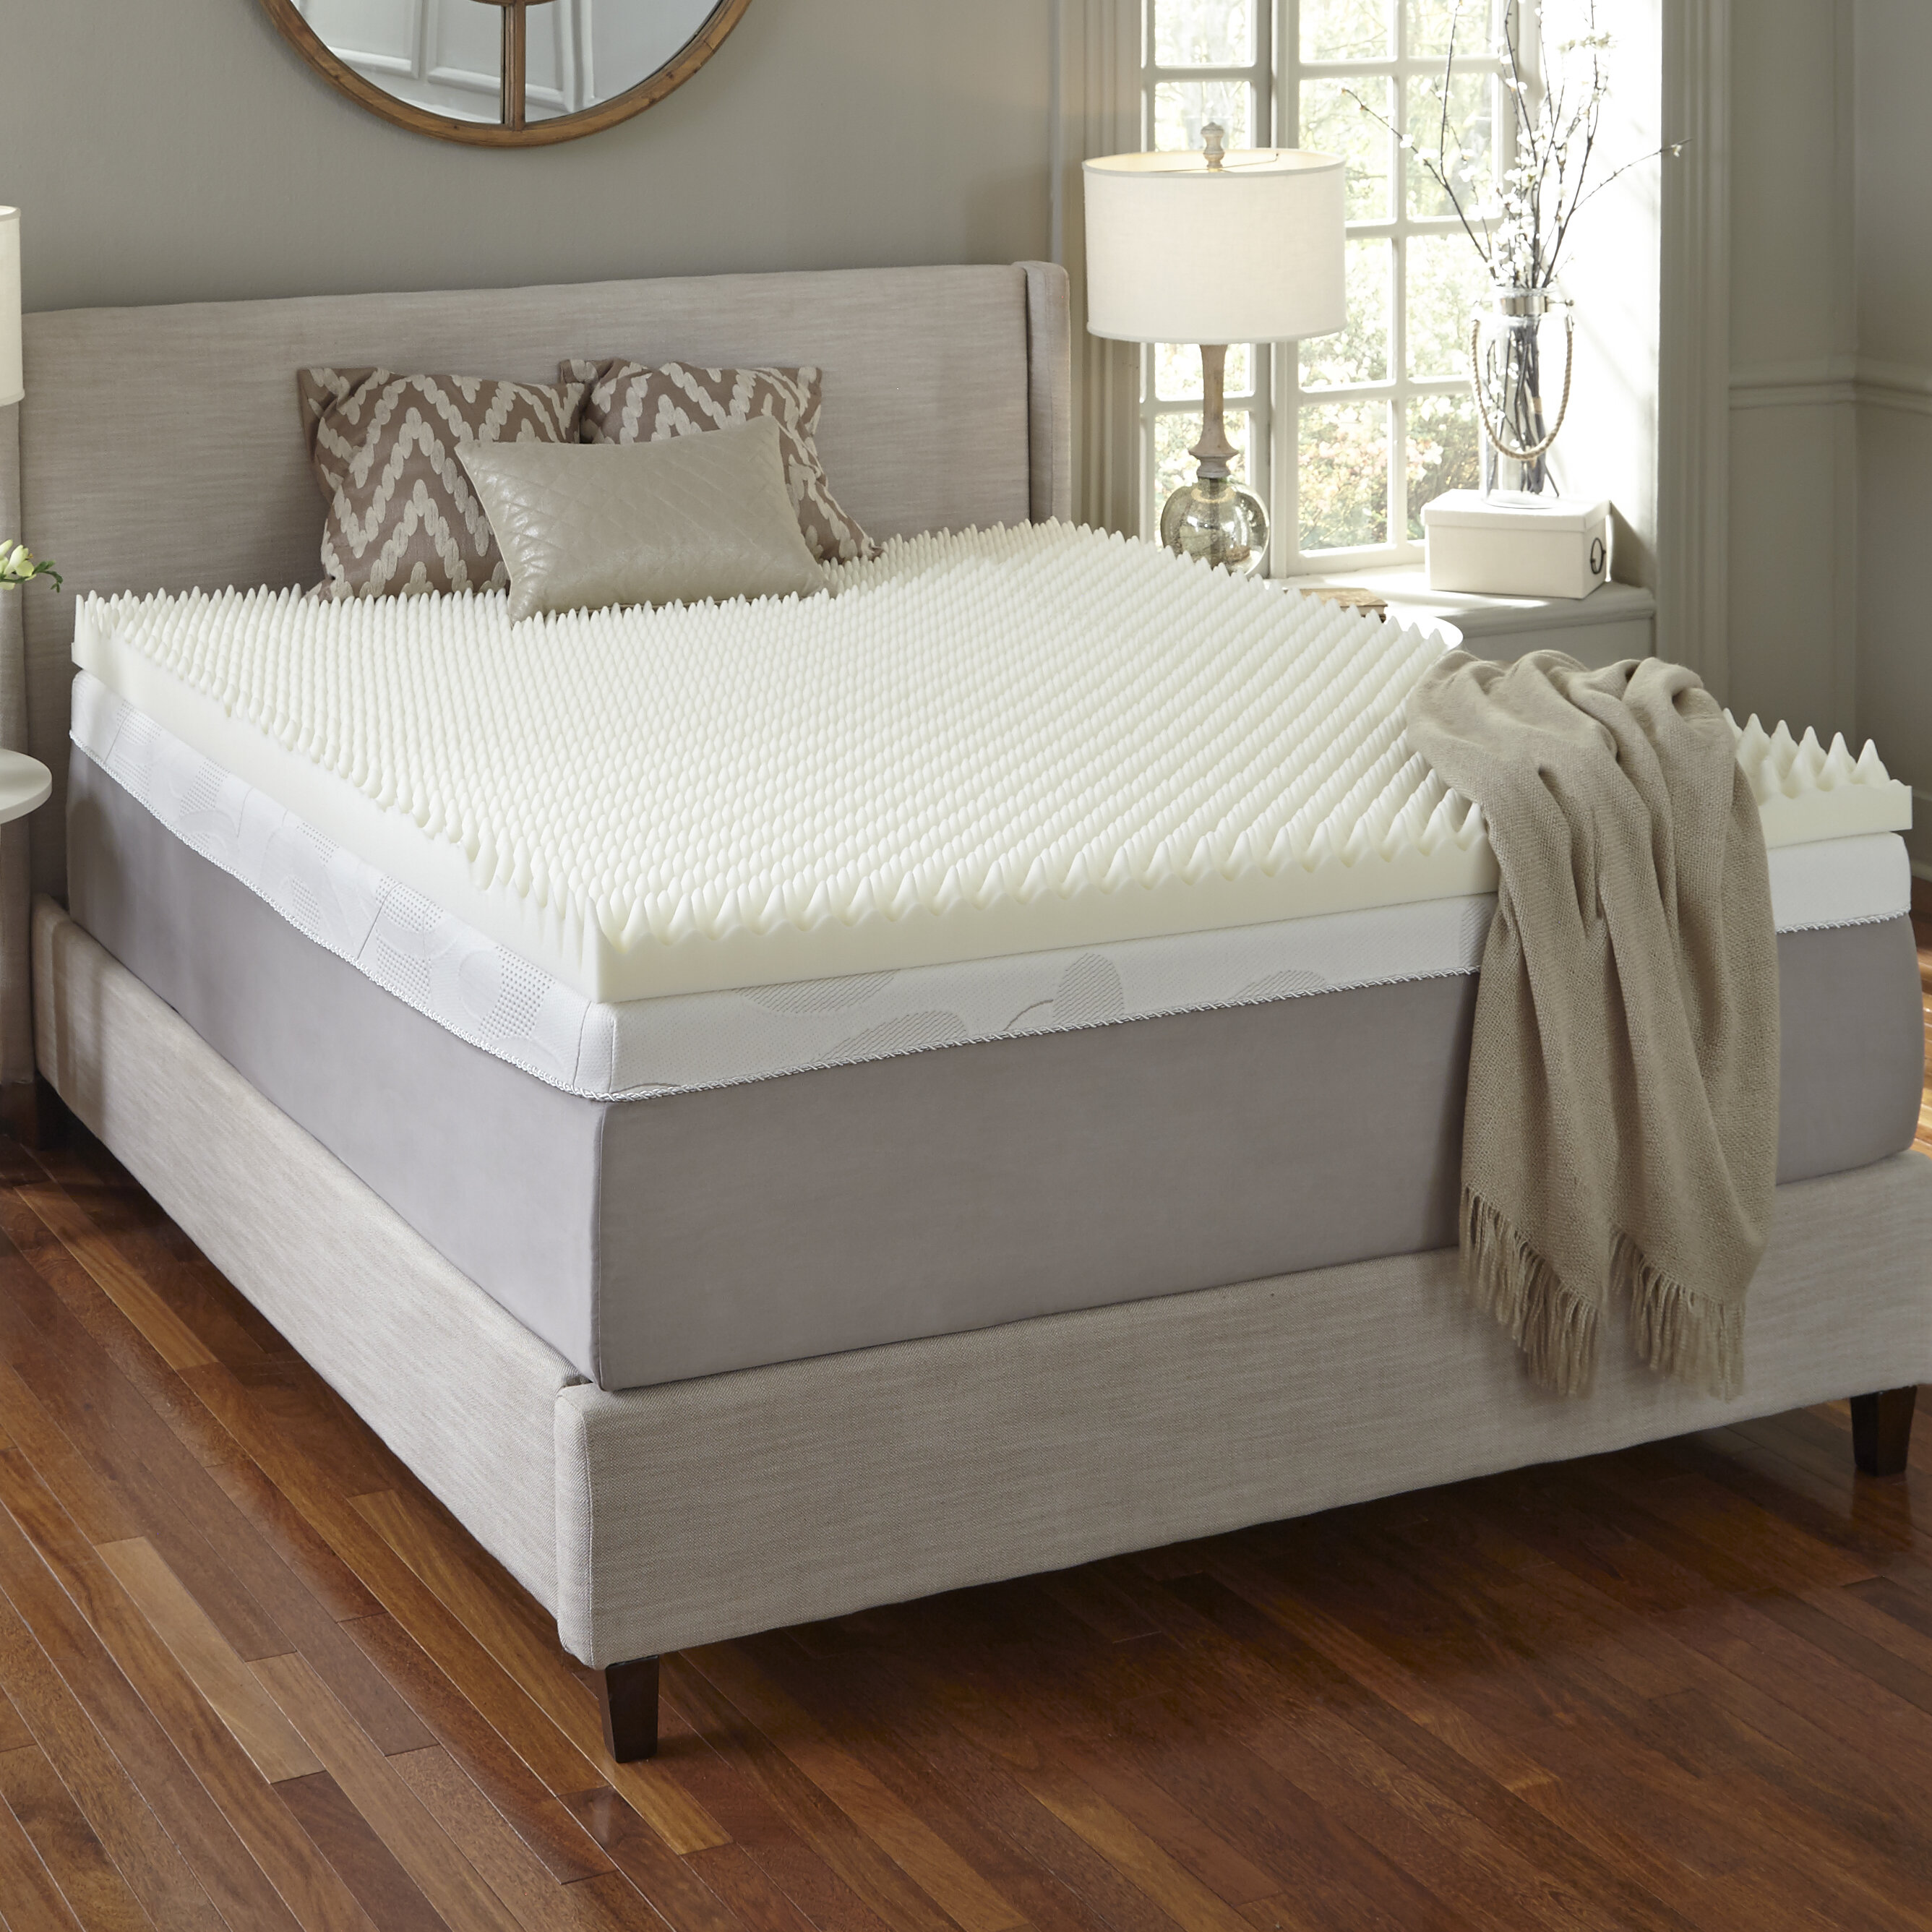 Memory Foam Mattress Topper.4 Memory Foam Mattress Topper